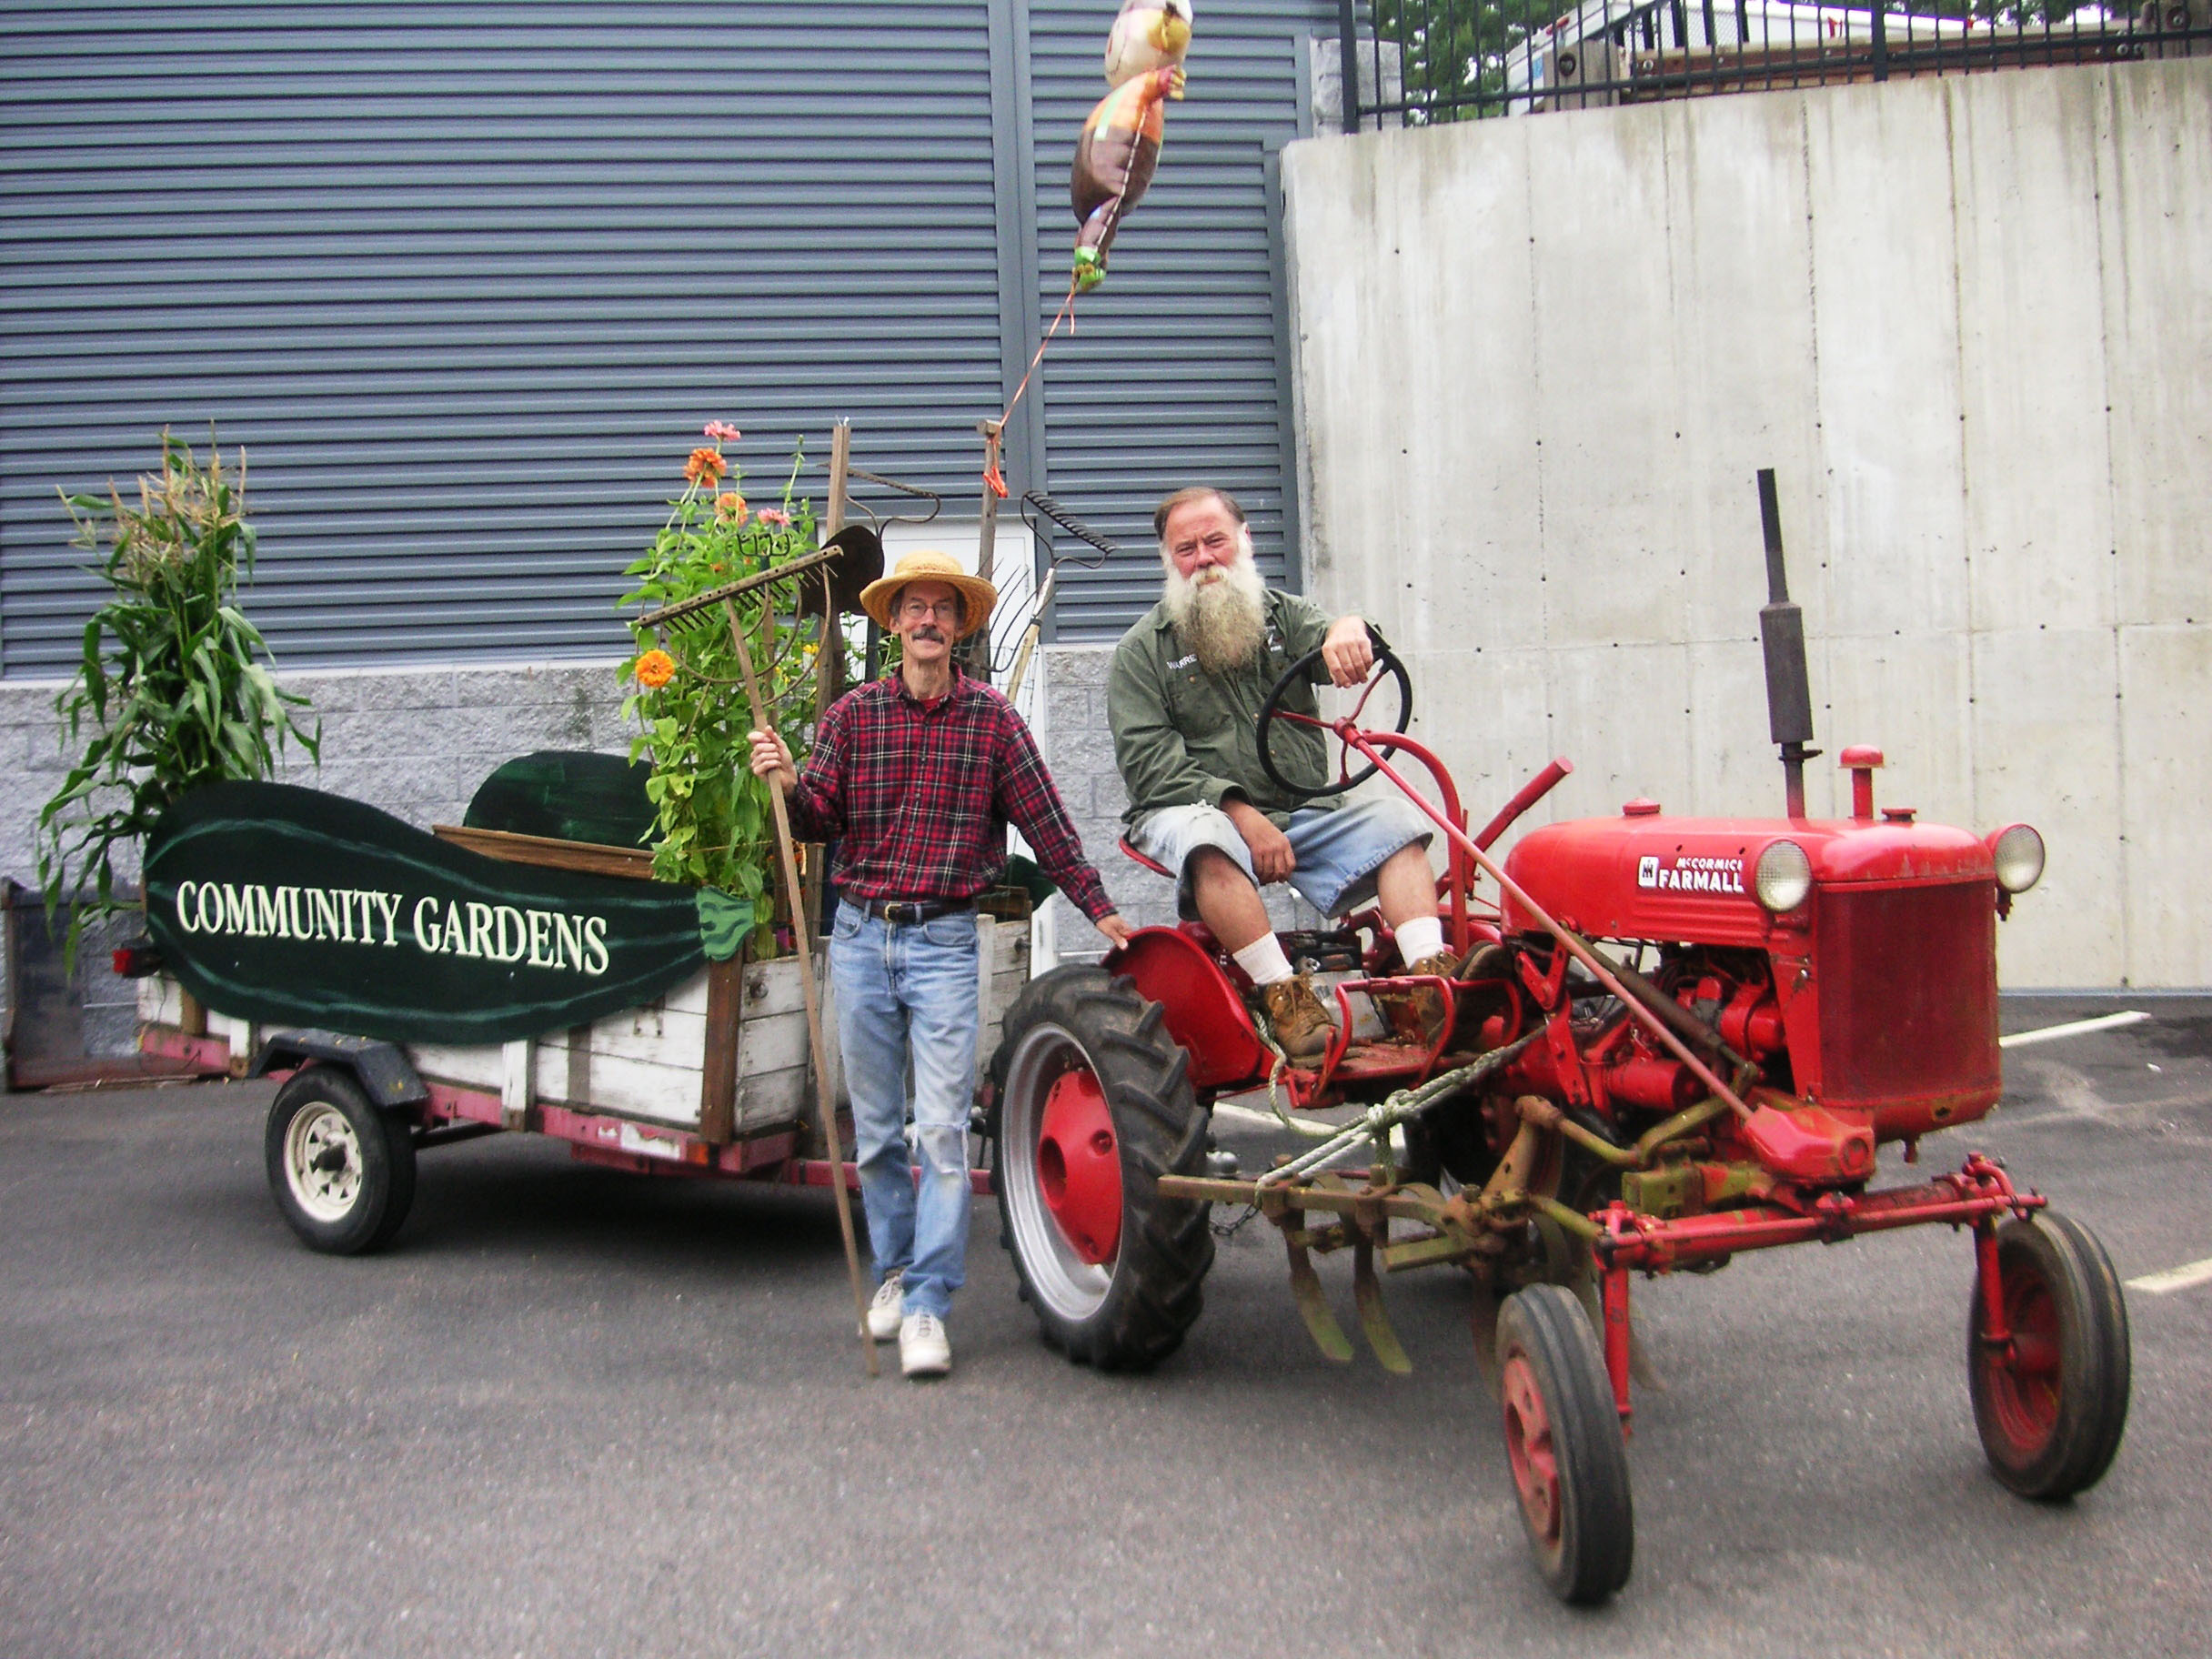 Community Gardens Tractor and Cart